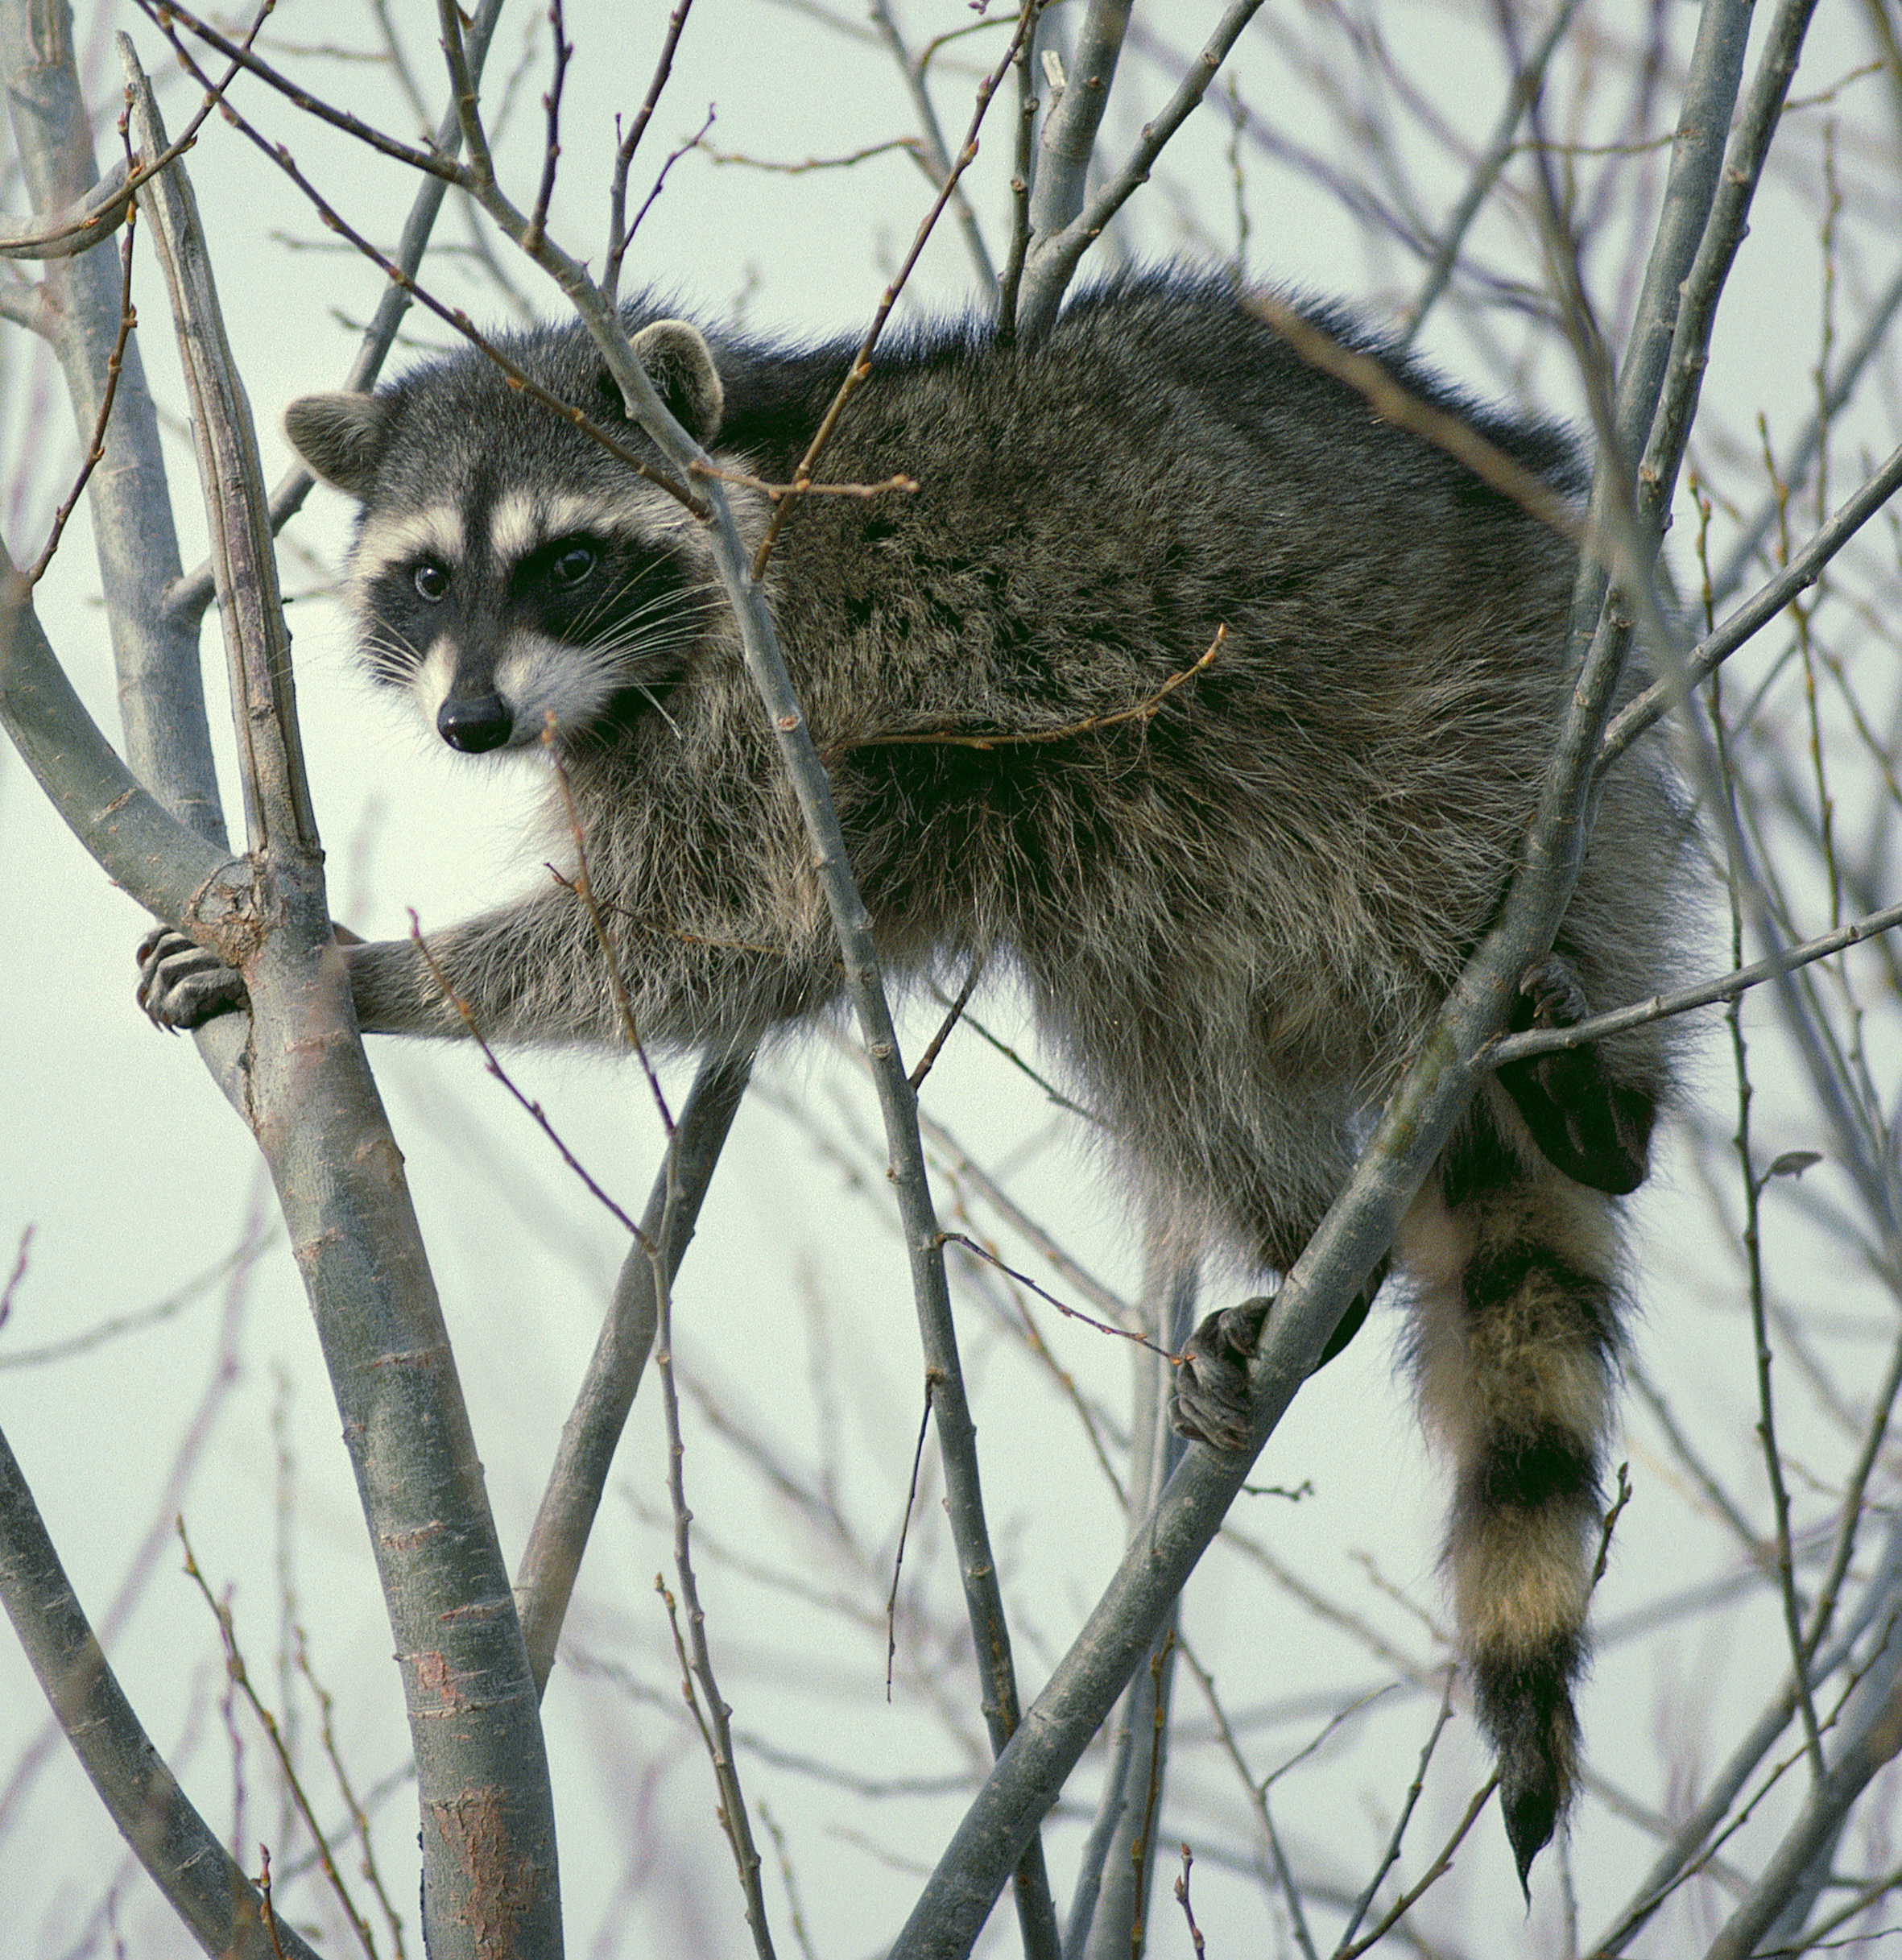 US Park Police Officer Attacked by Rabid Raccoon, Accidentally Shoots Himself